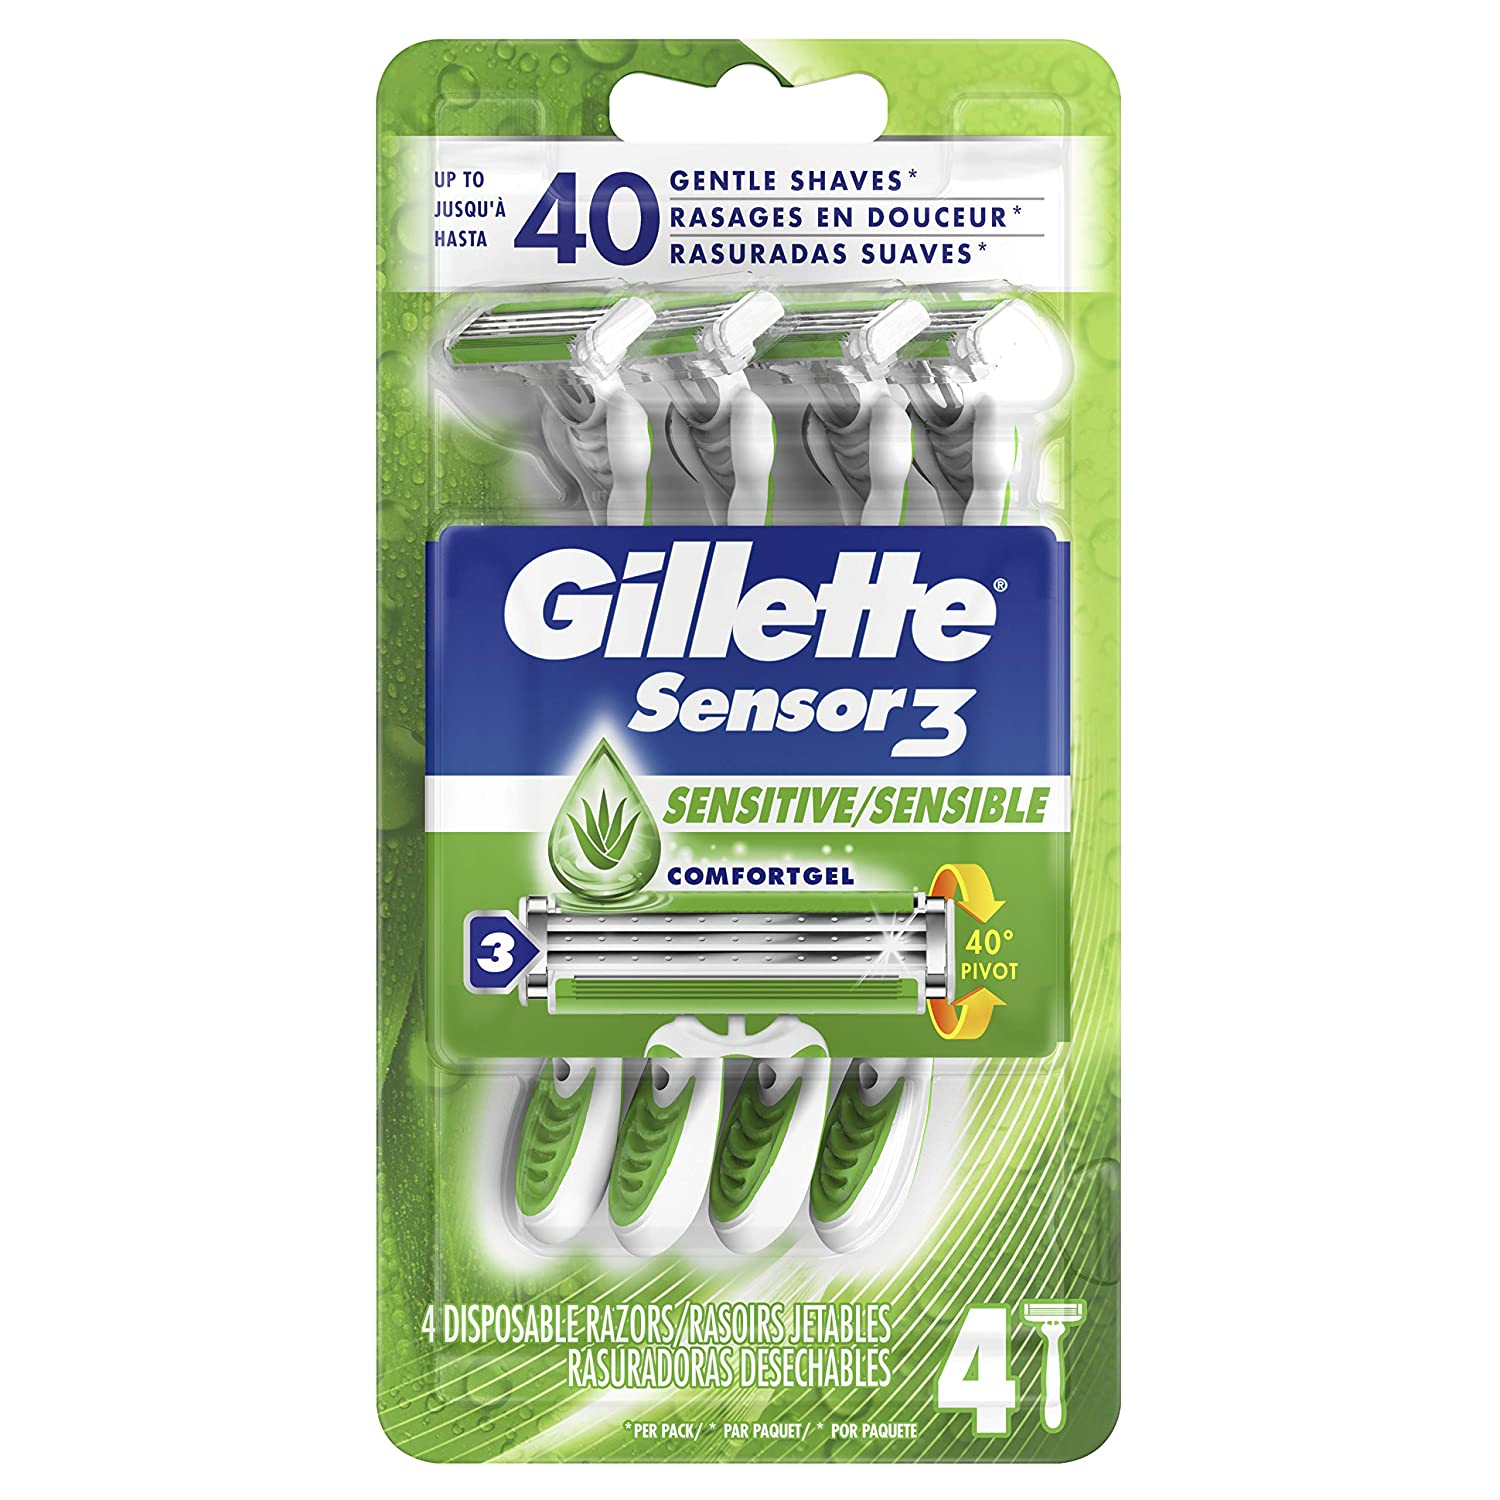 Gillette Sensor3 Disposable Razor for Sensitive Skin, pack of four